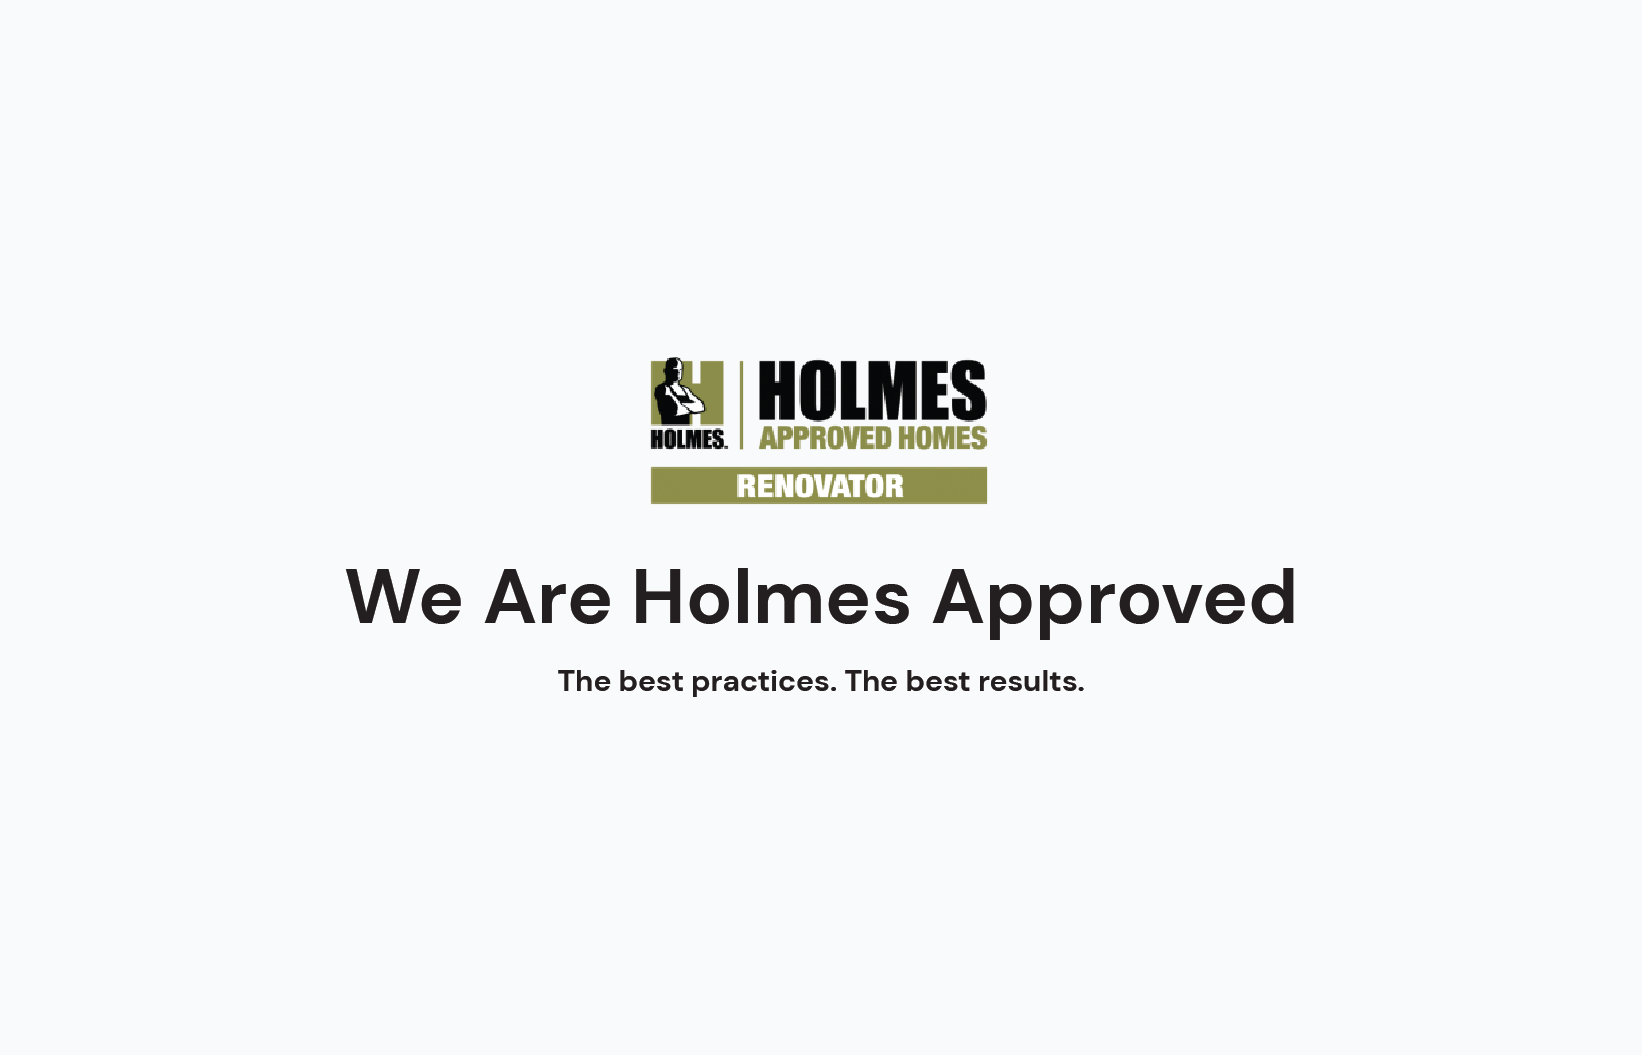 We are a Holmes Approved Homes Renovator